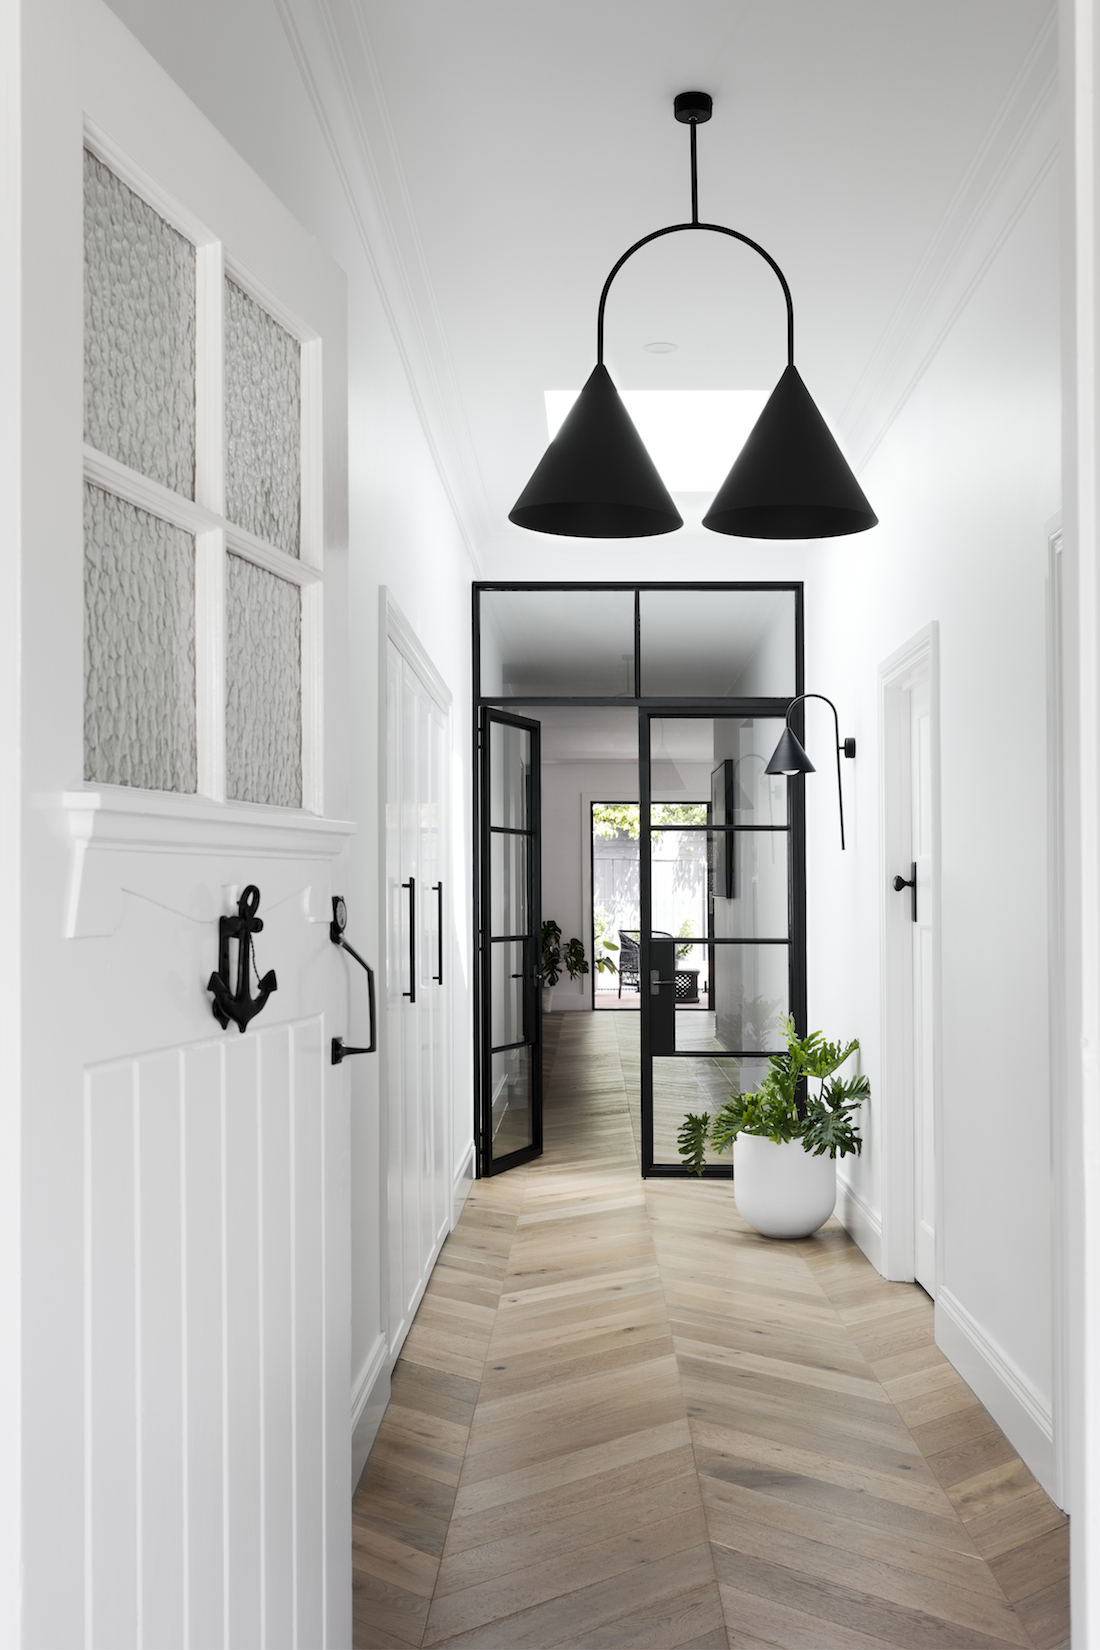 Statement Lighting Steals The Show In This Californian Bungalow Renovation